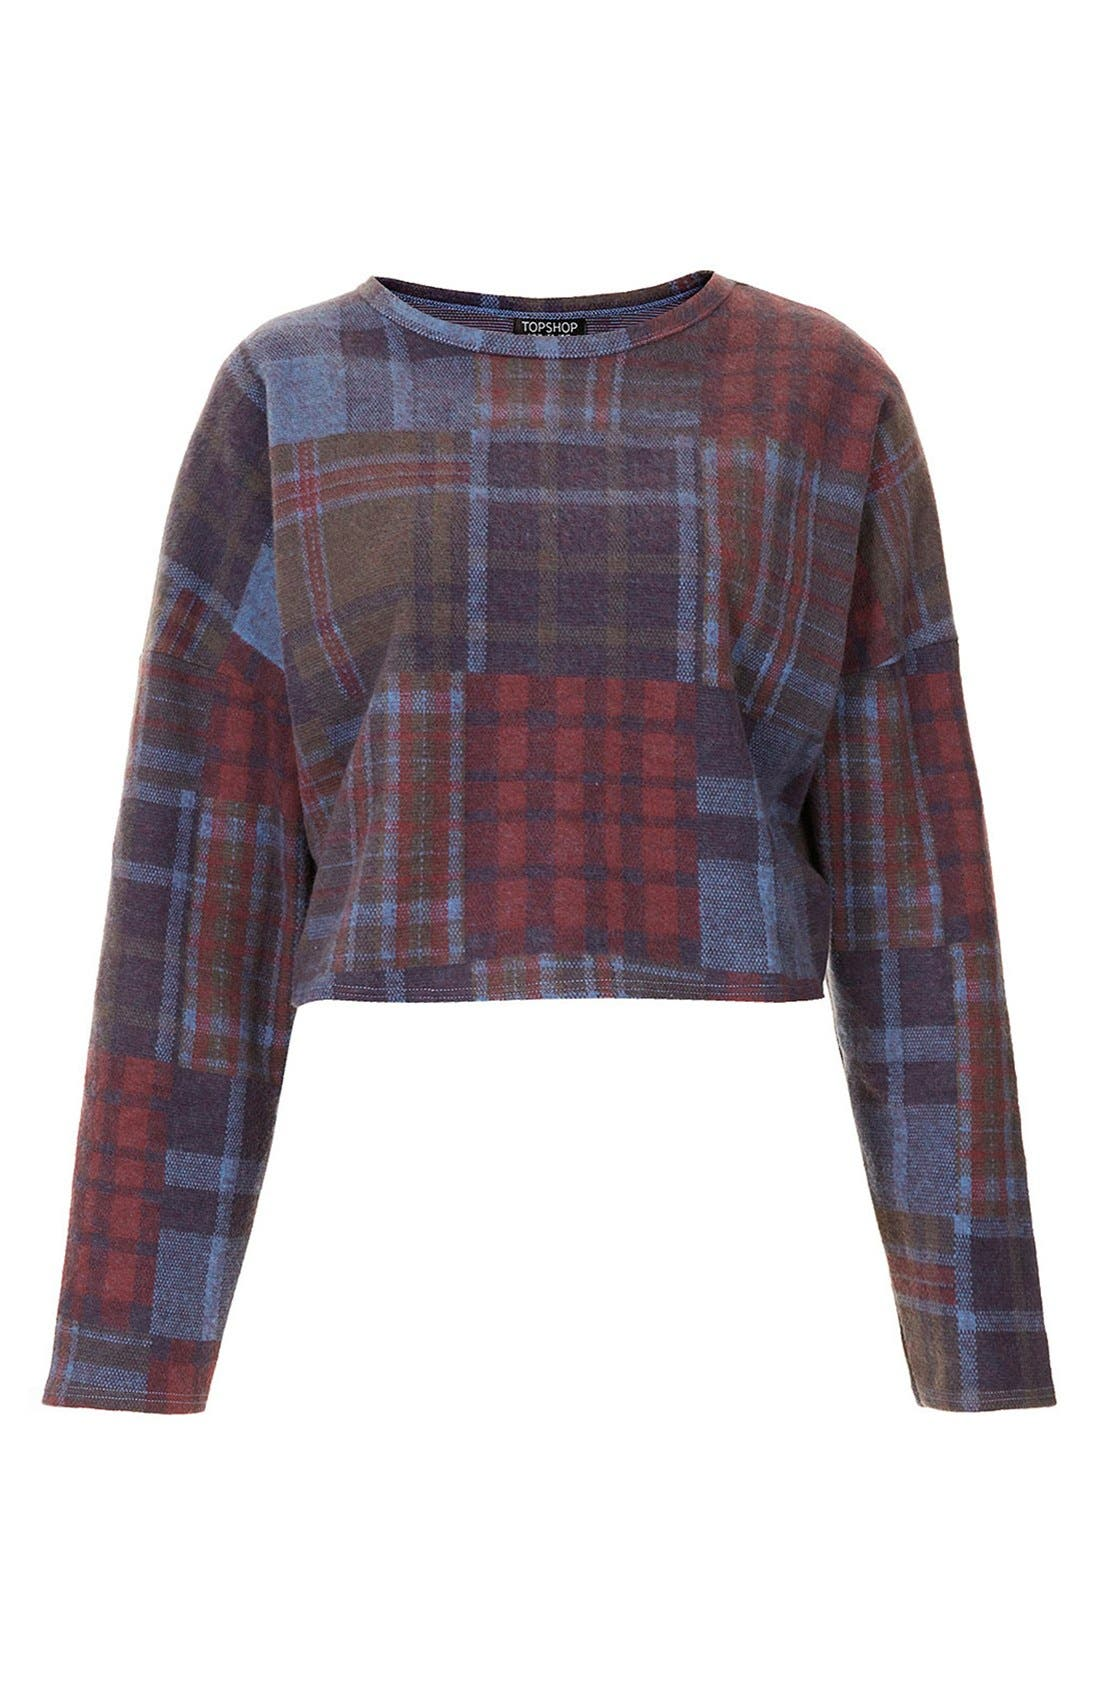 Alternate Image 3  - Topshop Mixed Plaid Crop Sweater (Petite)